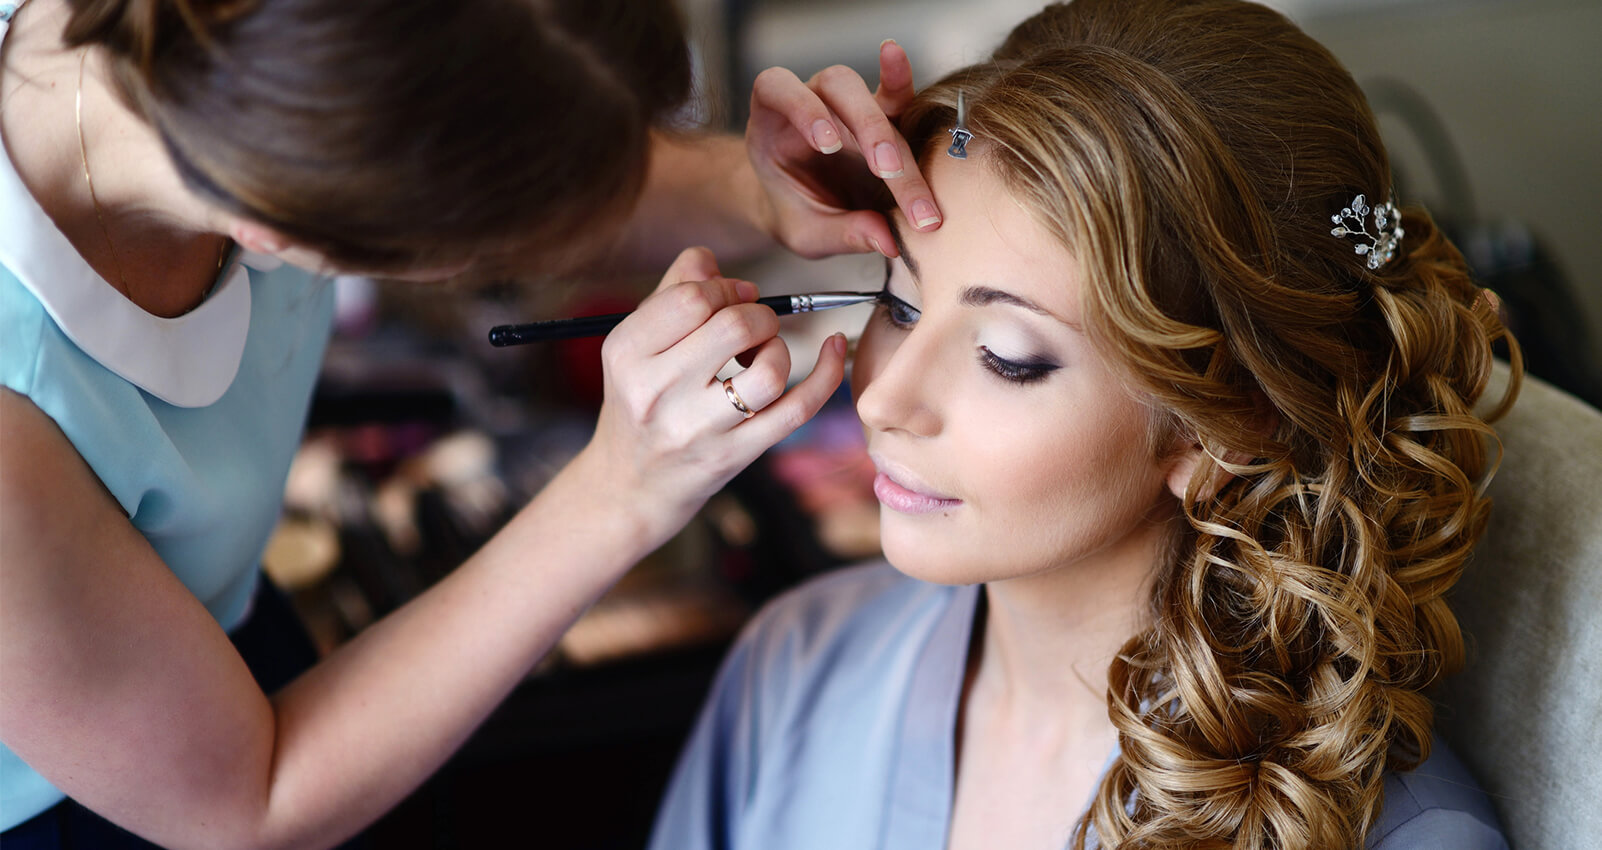 Professional make-up artist applying eyeshadow to bride with curls